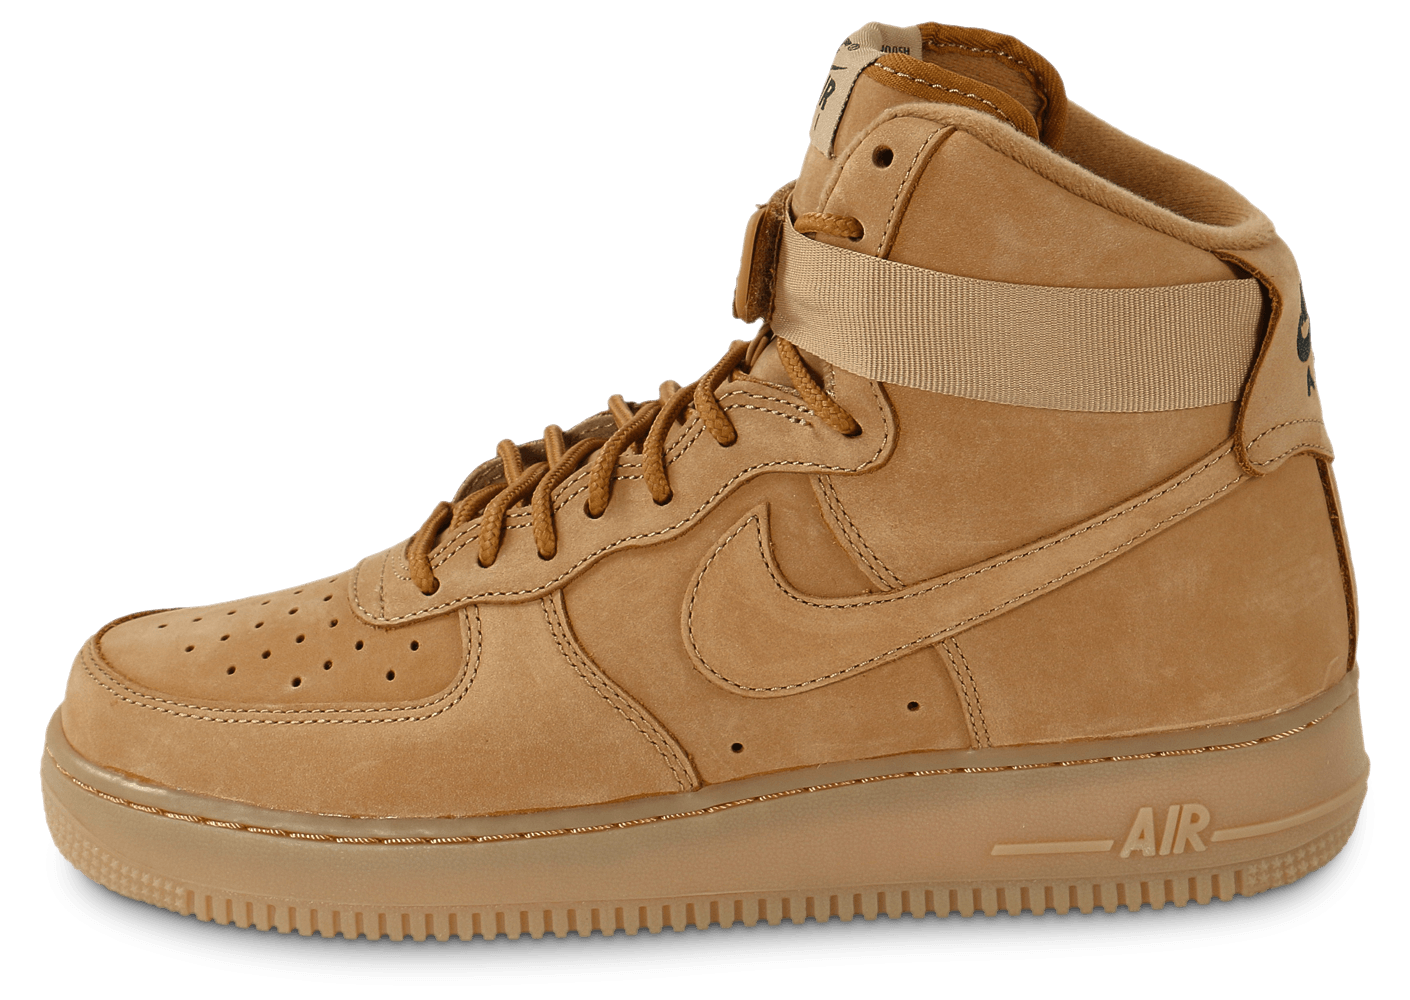 nike air force 1 high 39 07 lv8 flax chaussures homme chausport. Black Bedroom Furniture Sets. Home Design Ideas